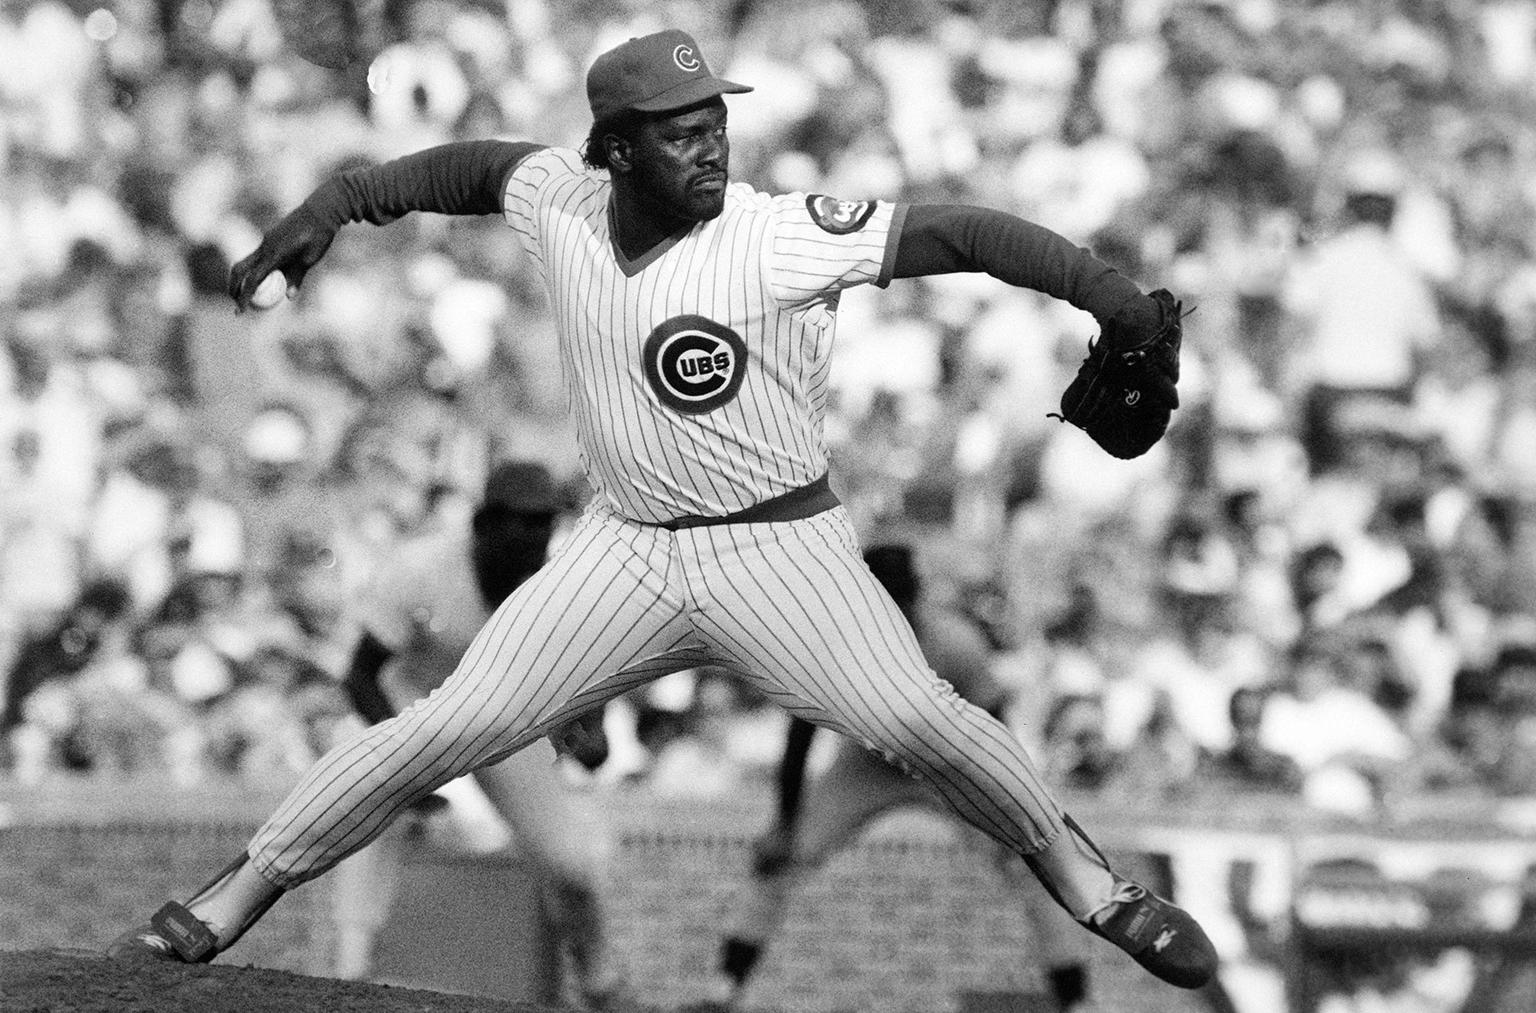 In this Dec. 8, 1987, file photo, Chicago Cubs relief pitcher Lee Smith works against the San Francisco Giants during a baseball game, in Chicago. (Bob Fila /AP File Photo)